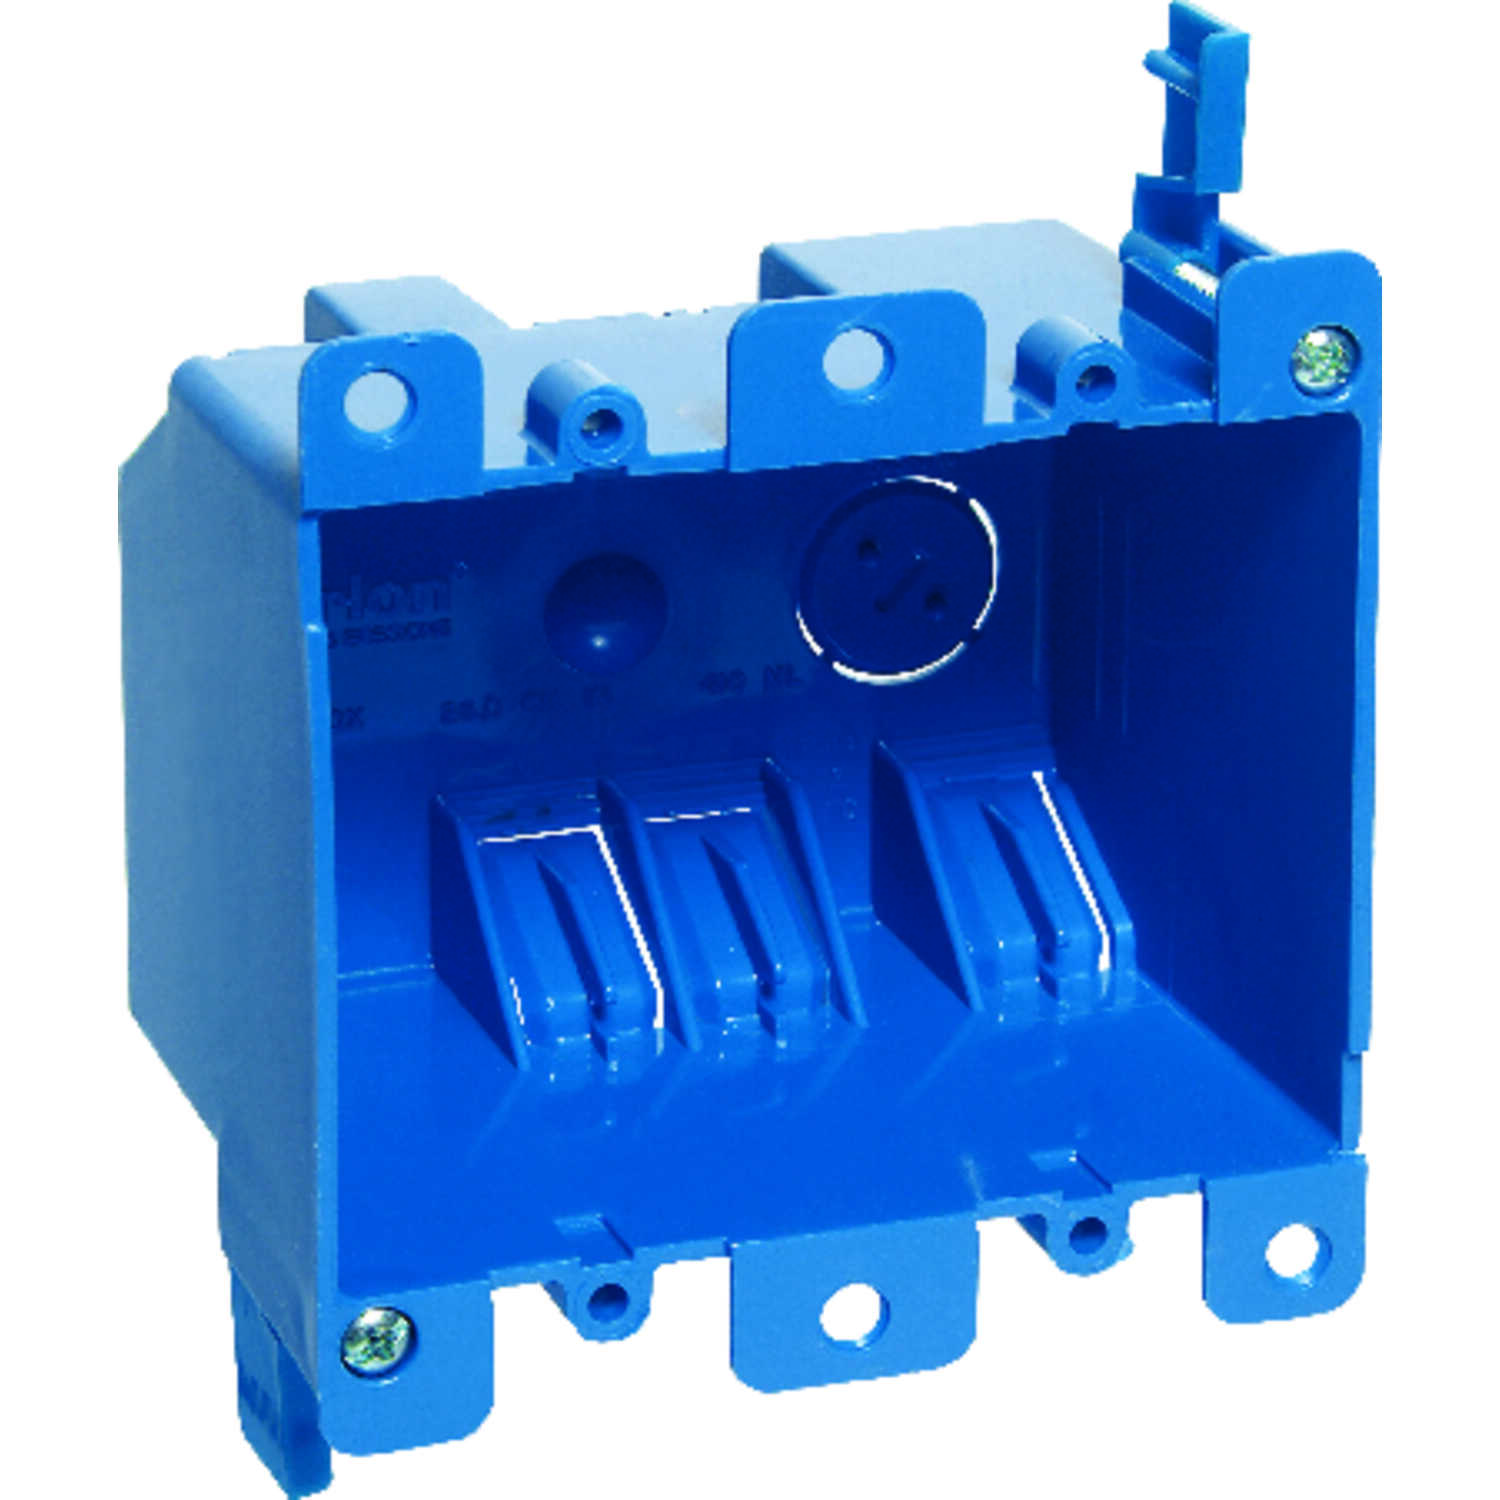 Carlon  3-15/16 in. Rectangle  PVC  2 gang Blue  Outlet Box